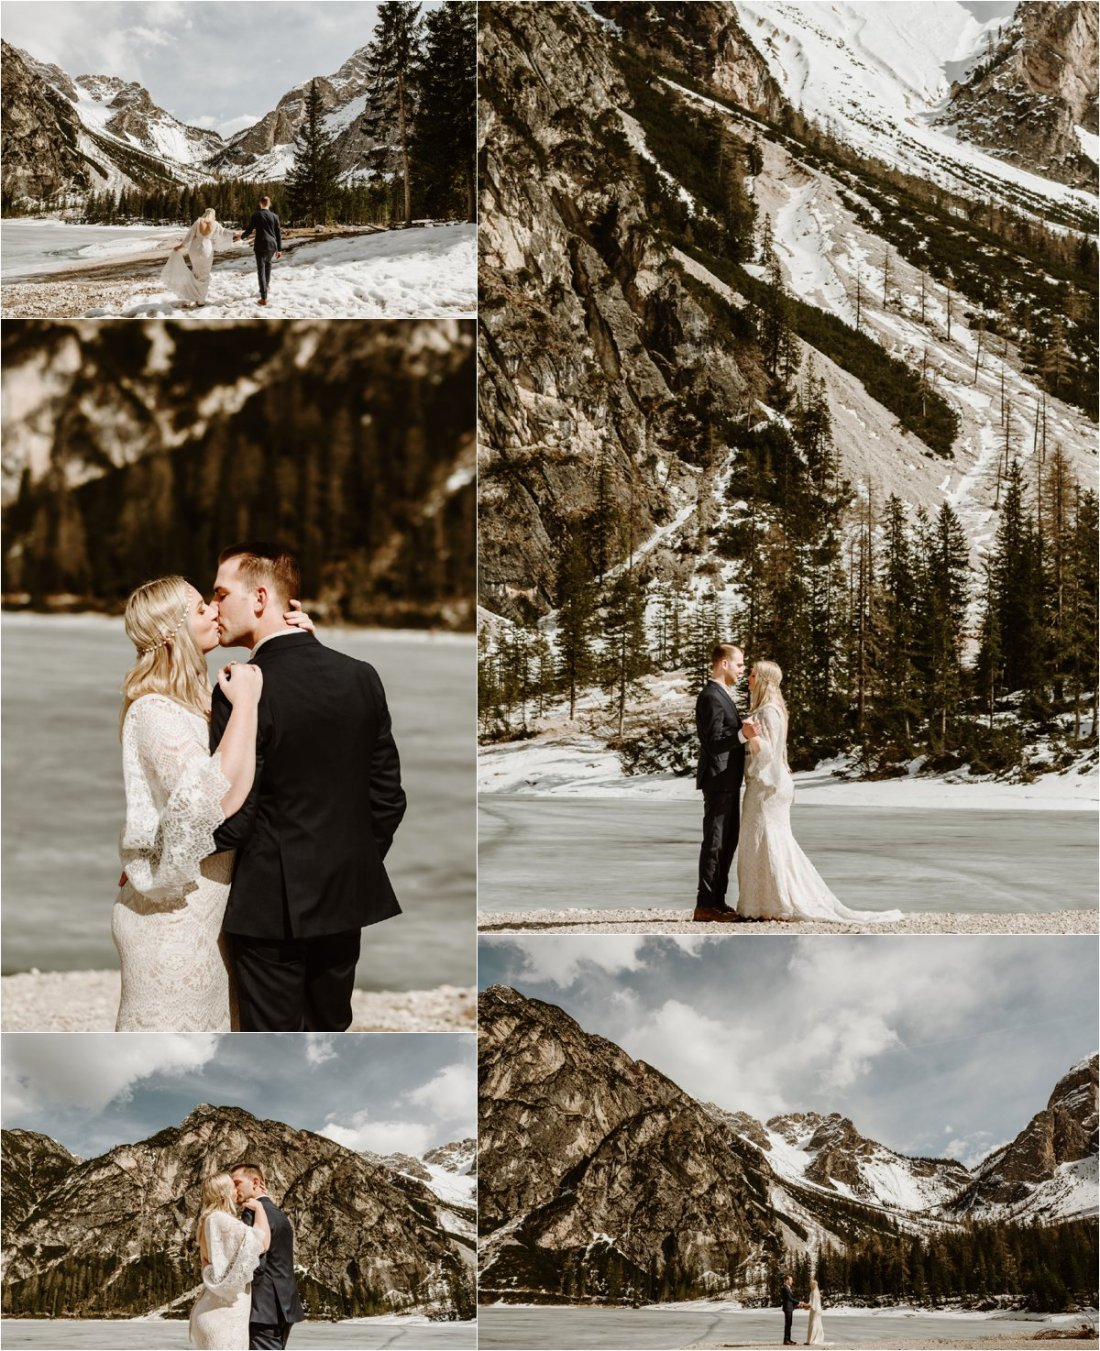 Erika & Nathan practice their first dance as husband & wife on the frozen shores of Lake Braies in the Dolomites in Italy. Photos by Wild Connections Photography